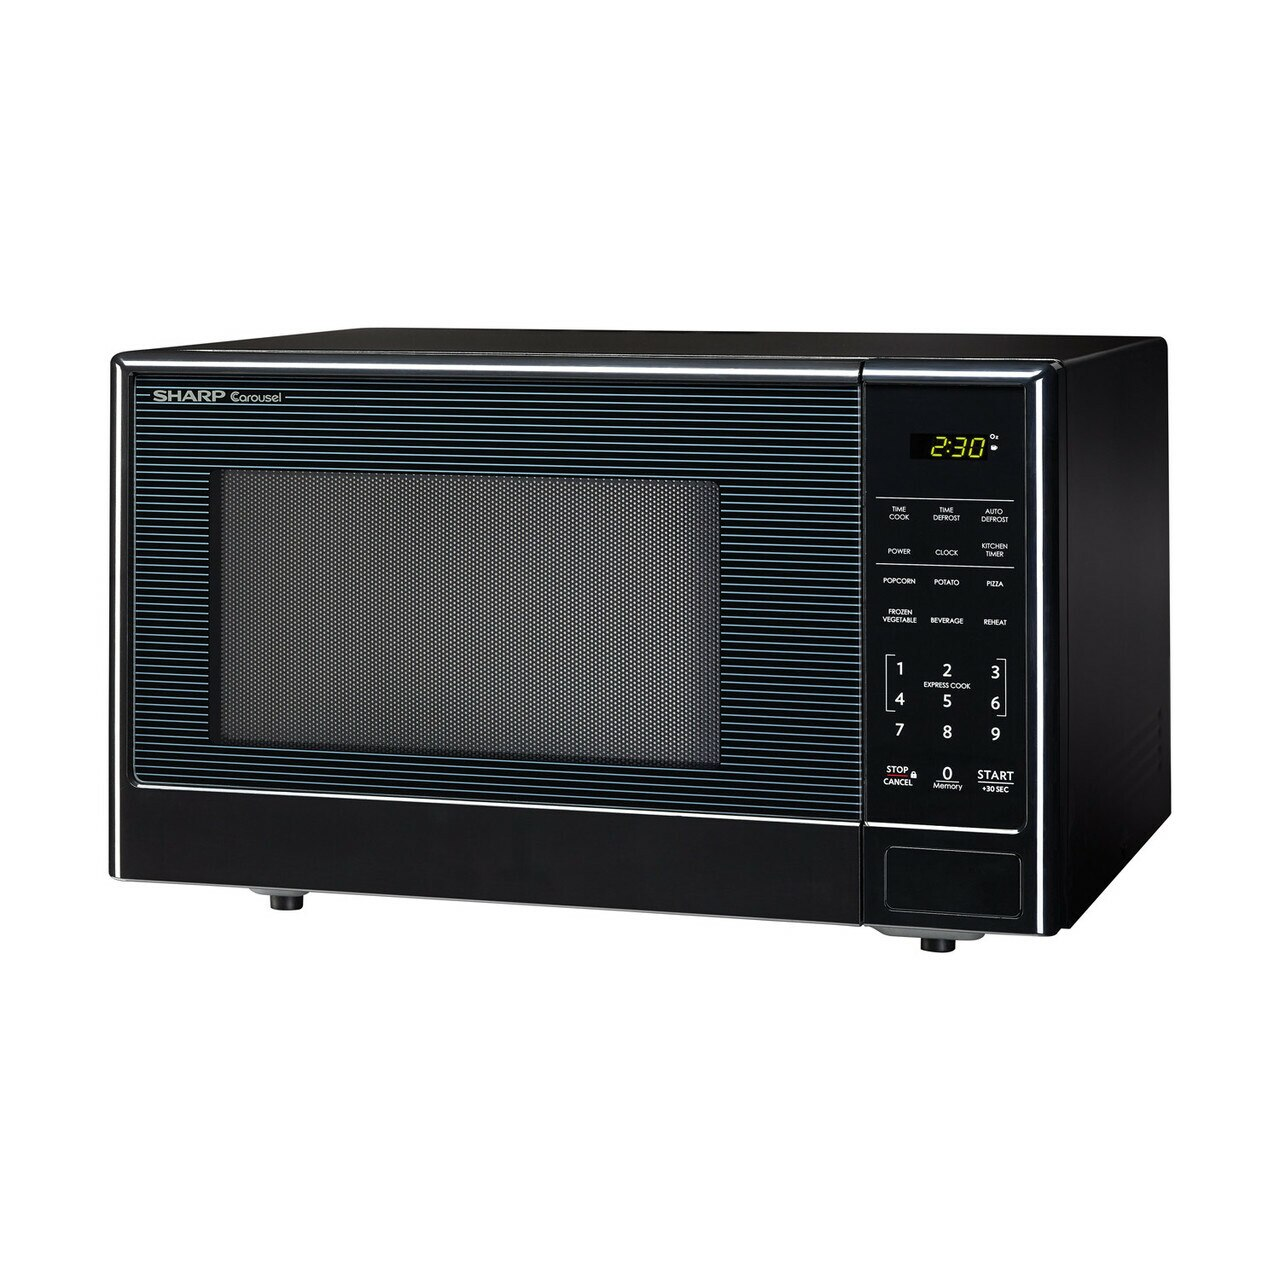 1.1 cu. ft. Sharp Black Carousel Countertop Microwave (SMC1111AB) – left angle view